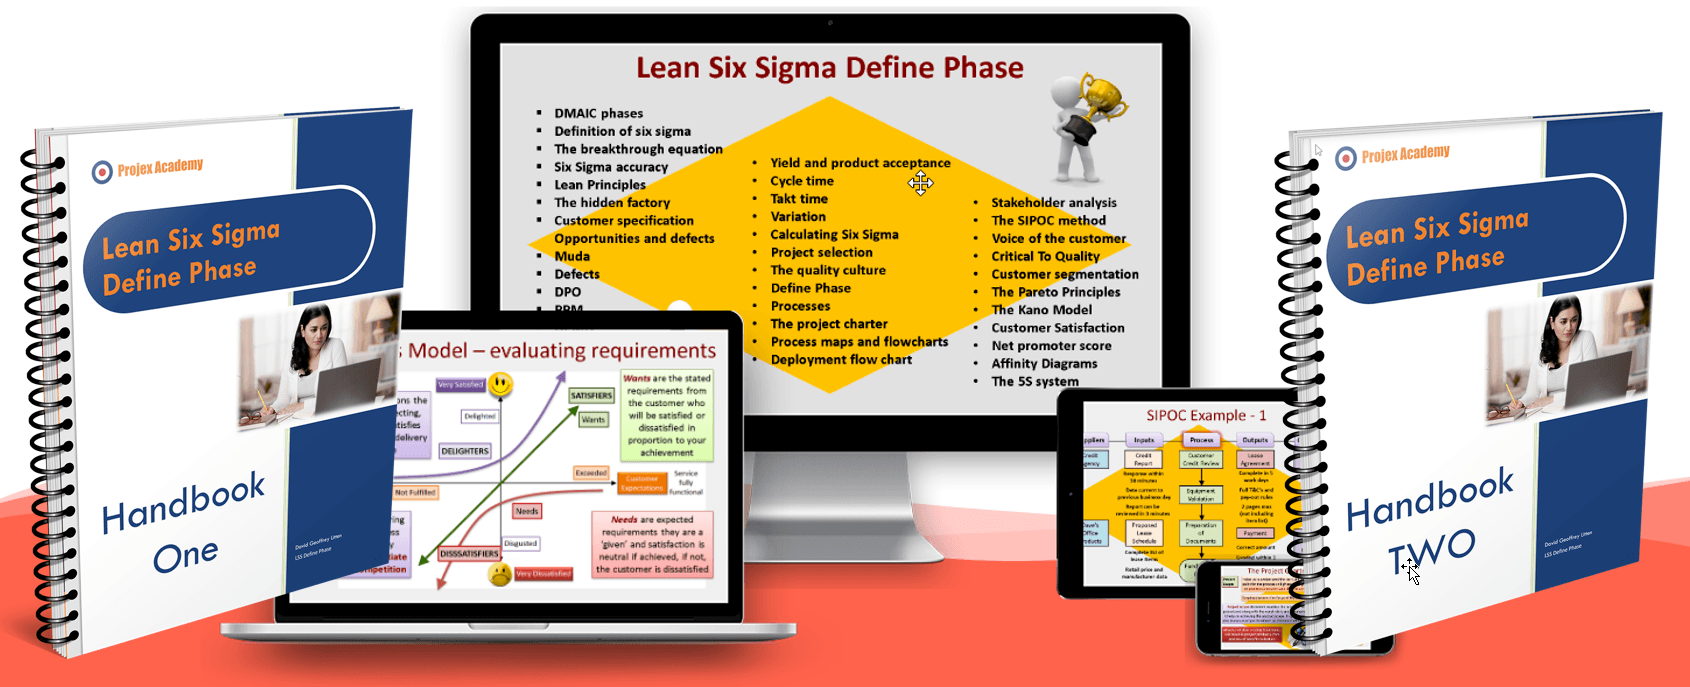 lean six sigma define phase - product master